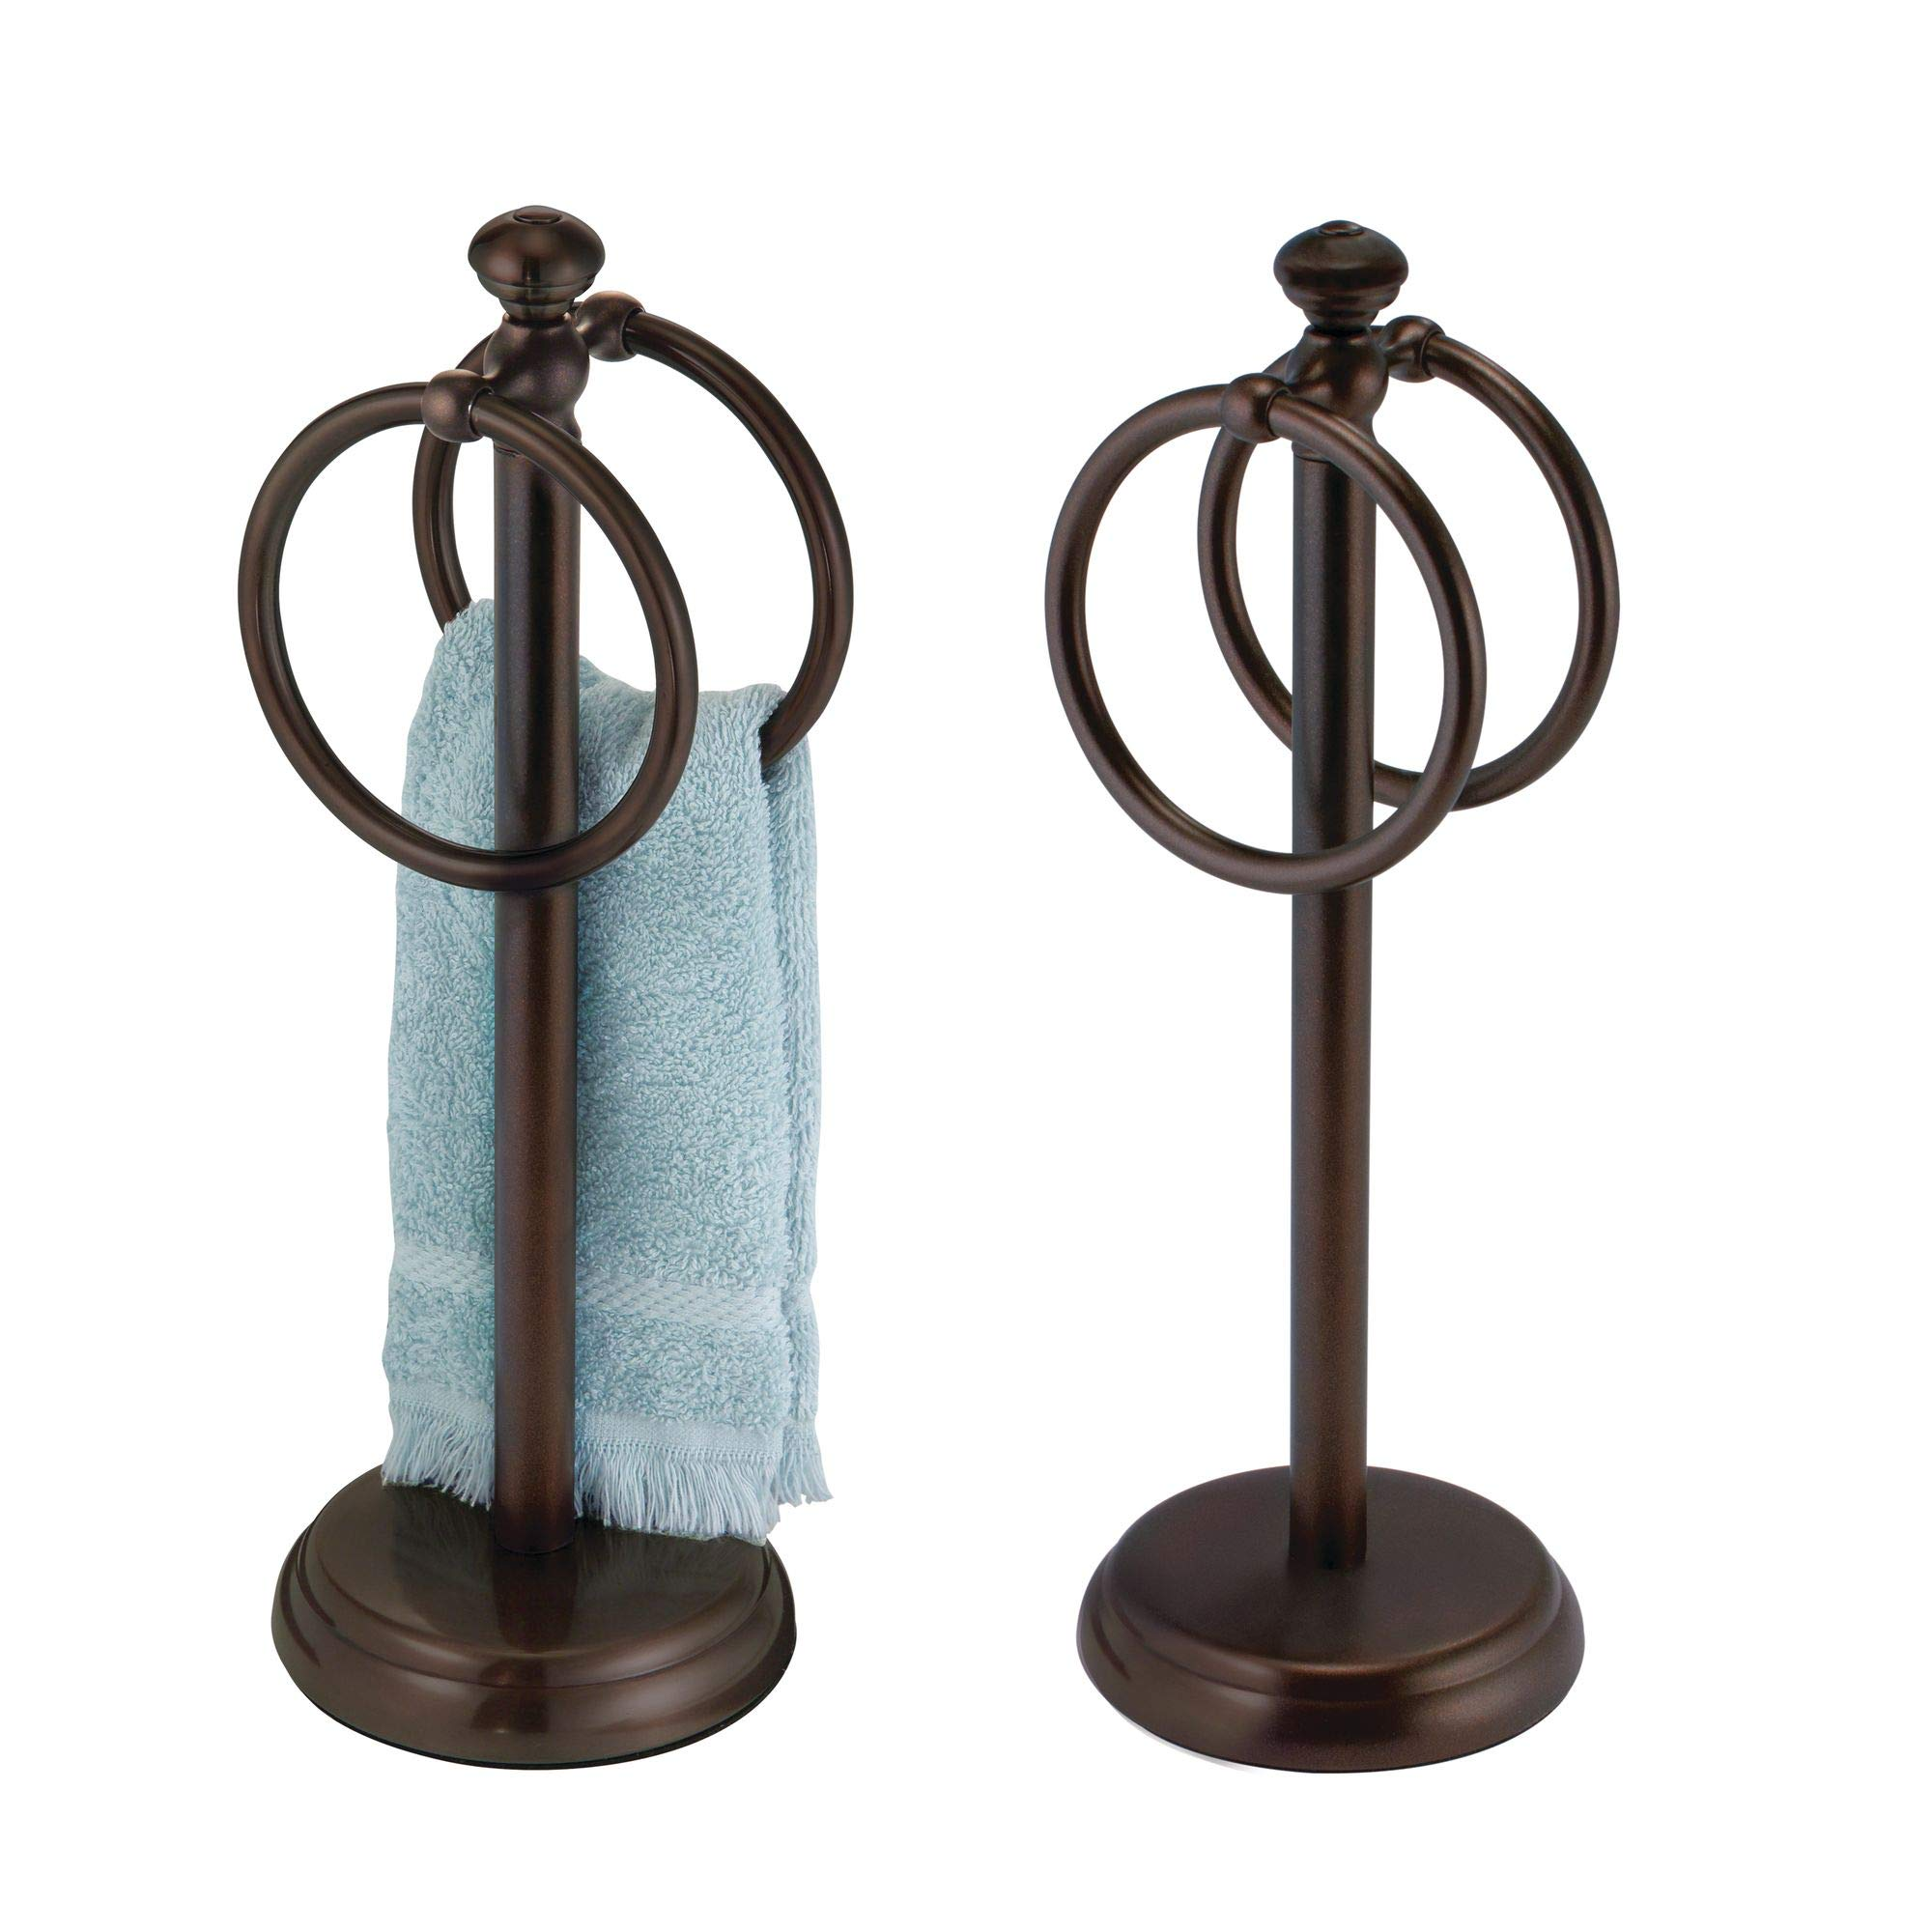 mDesign Double Sided Towel Holder Stand for Bathroom Vanity Countertops - Pack of 2, Bronze